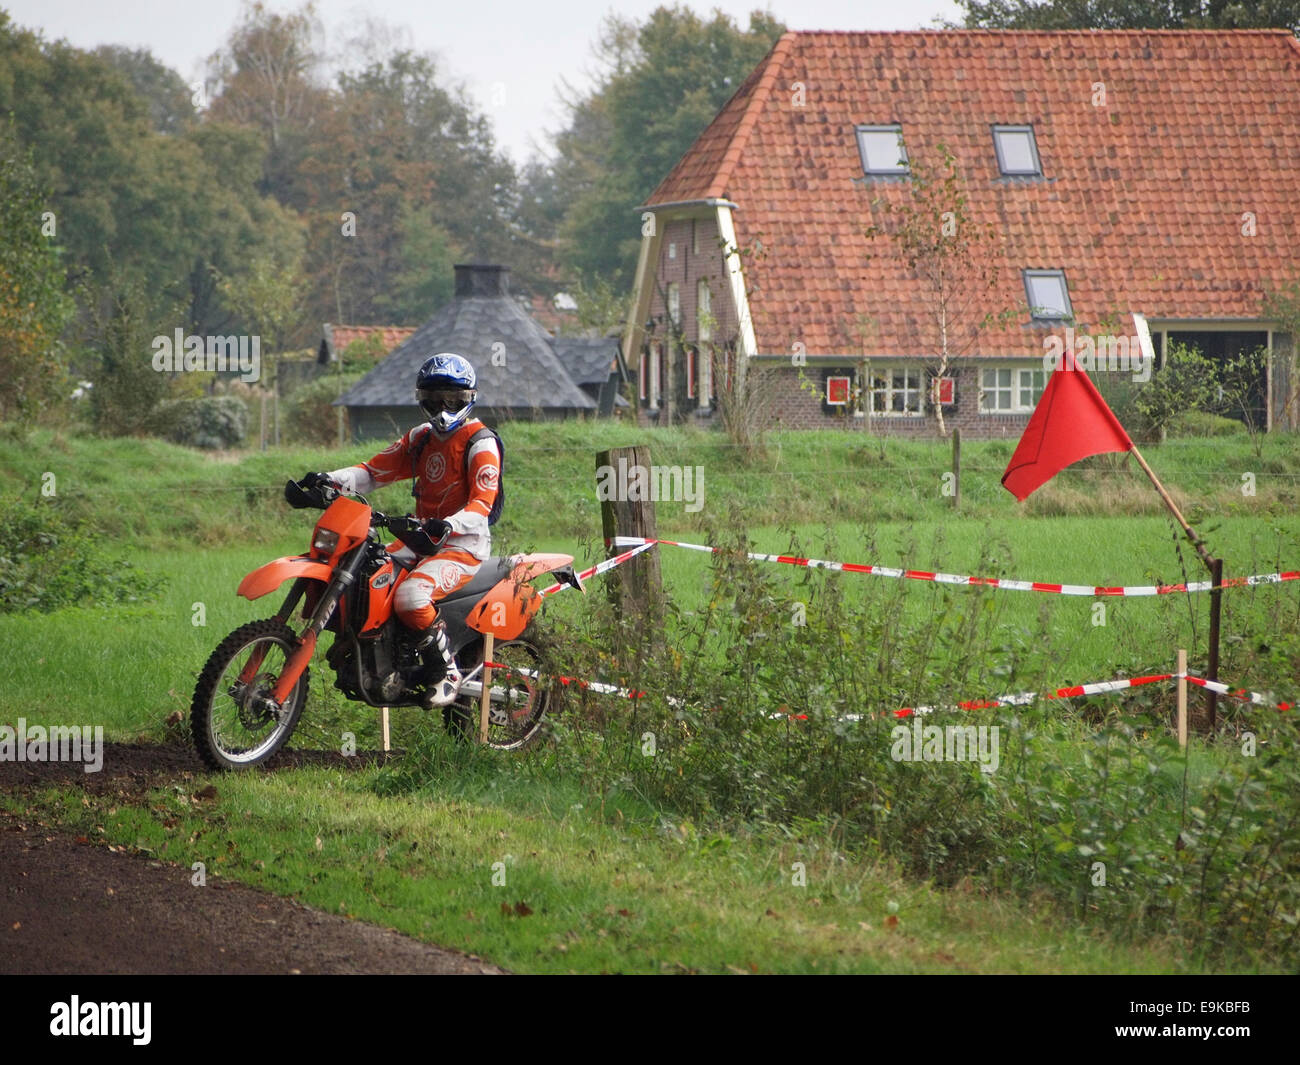 Man riding KTM cross motorcycle at an enduro event in Ruurlo, the Netherlands. - Stock Image